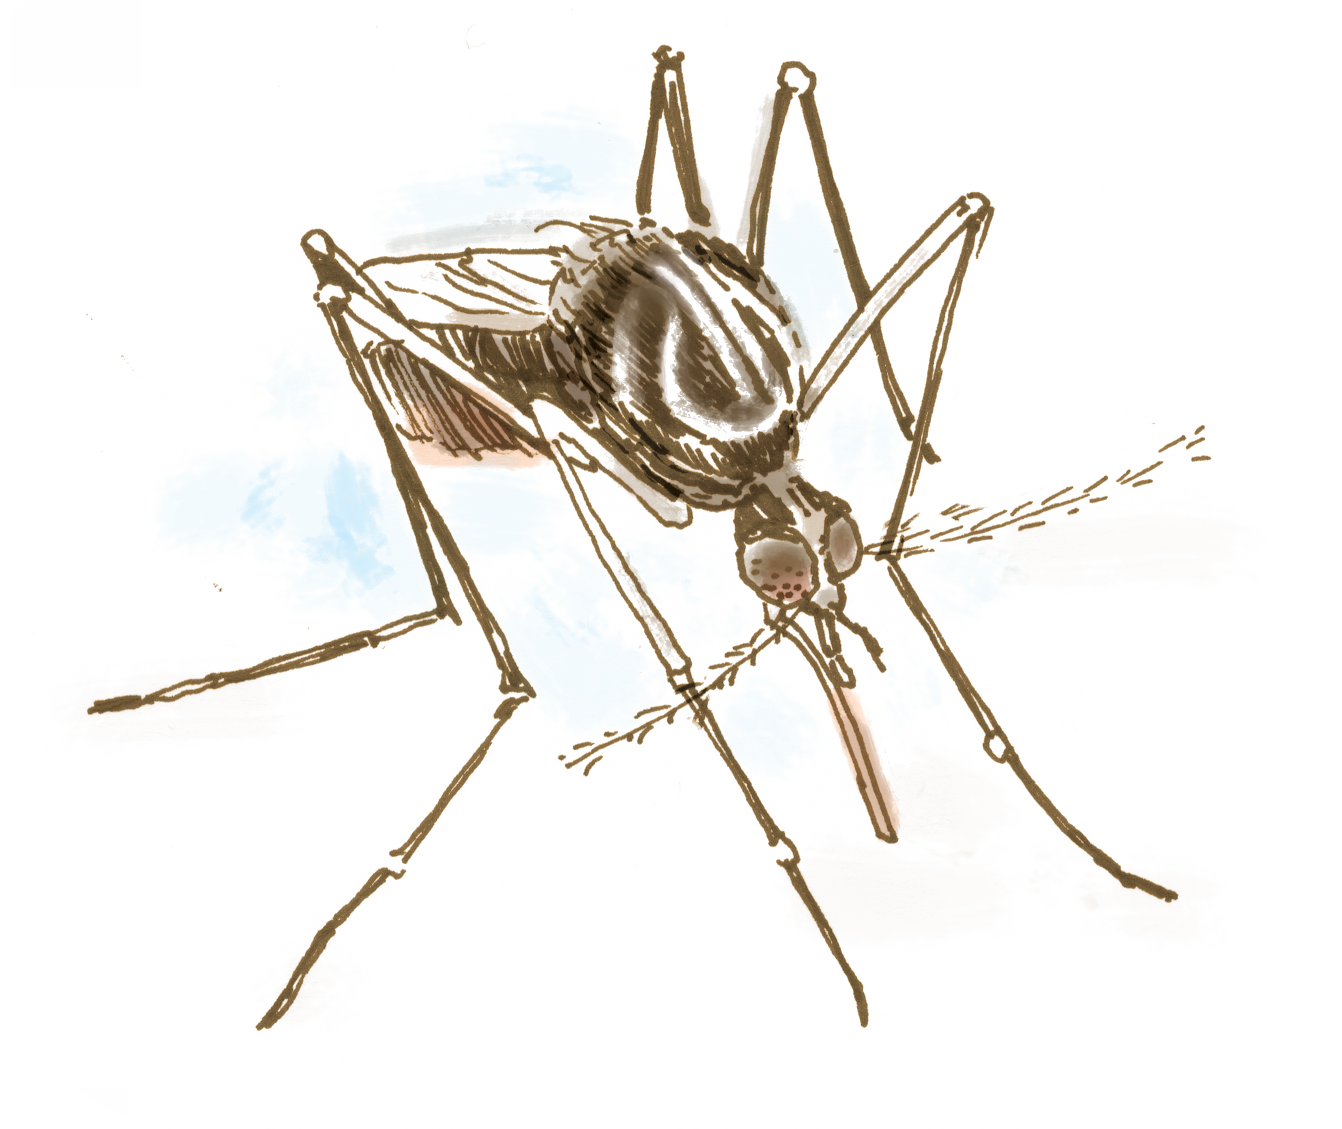 Vector mosquitoes carries malaria. Could this mosquito bring